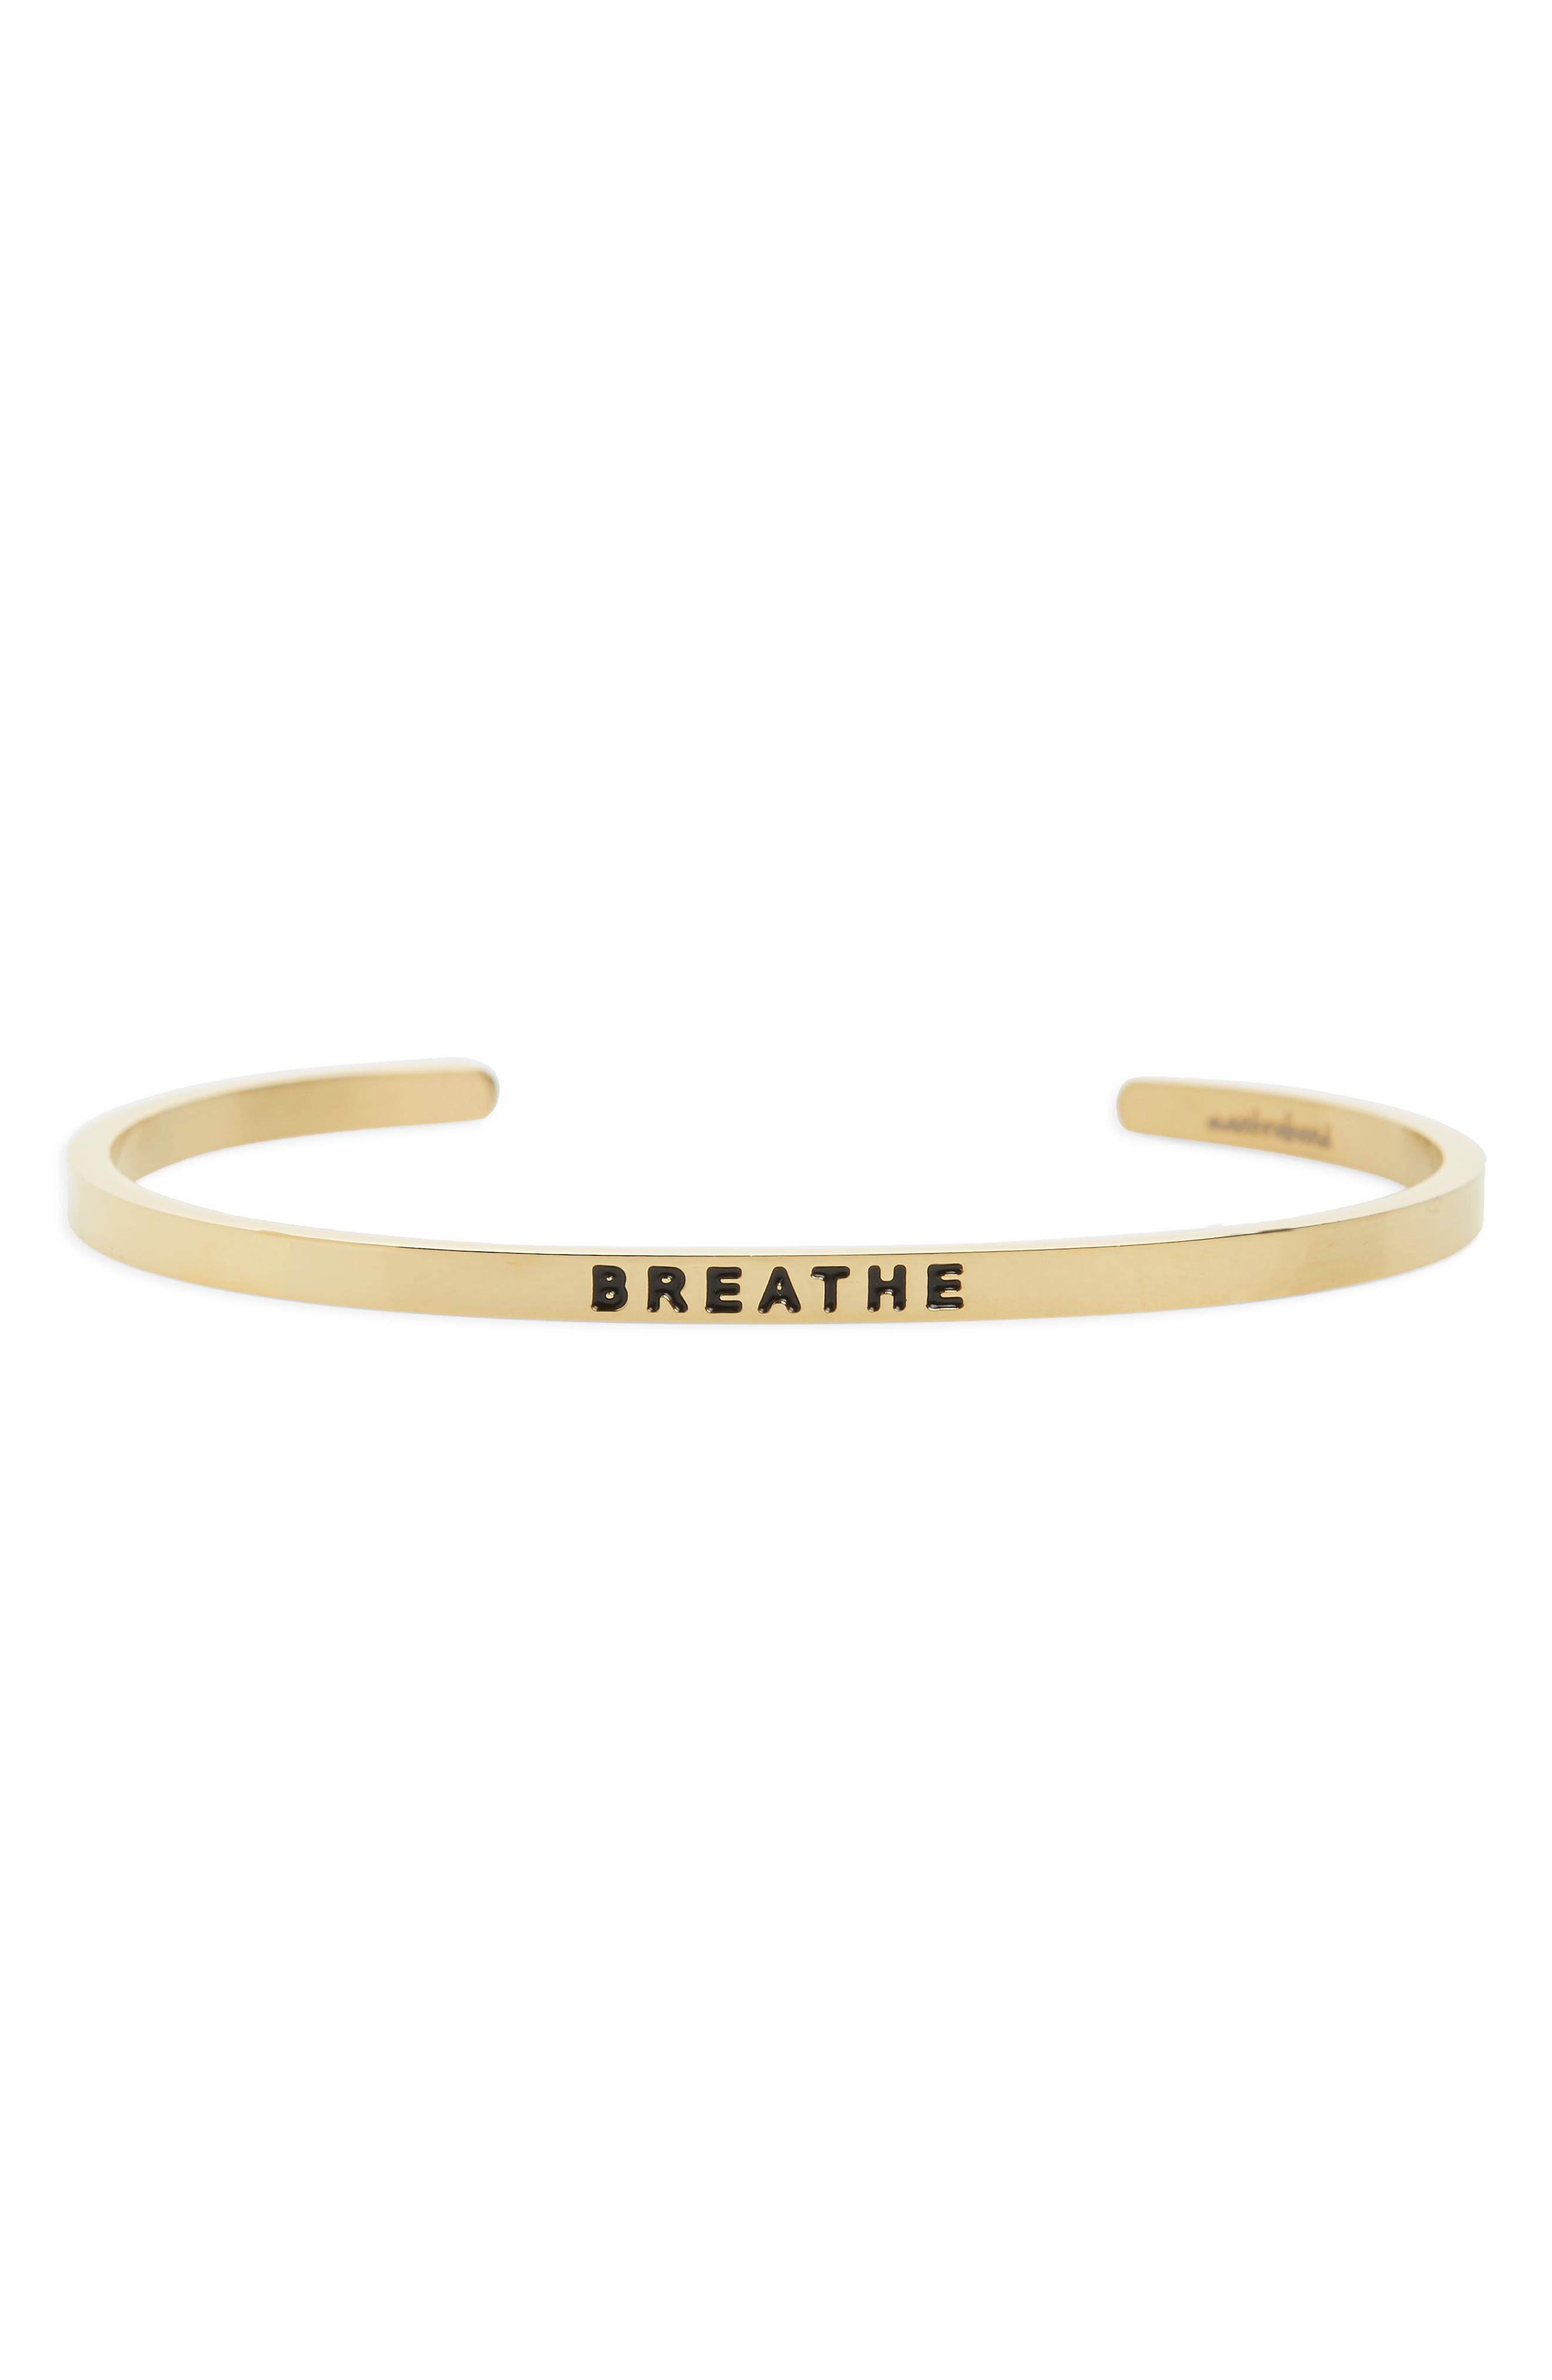 MantraBand Breathe Engraved Cuff